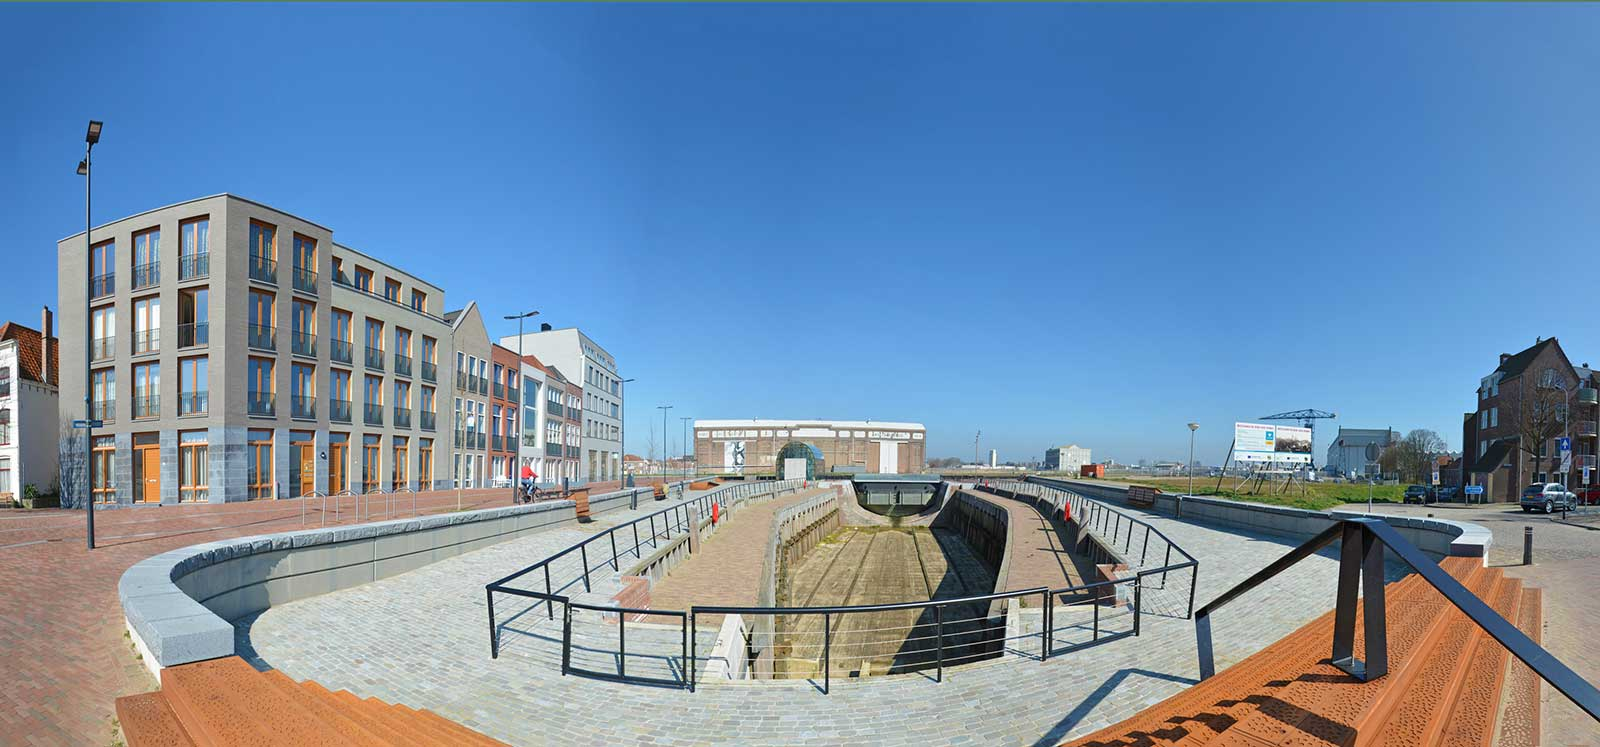 Renovated Perry-dock in Flushing